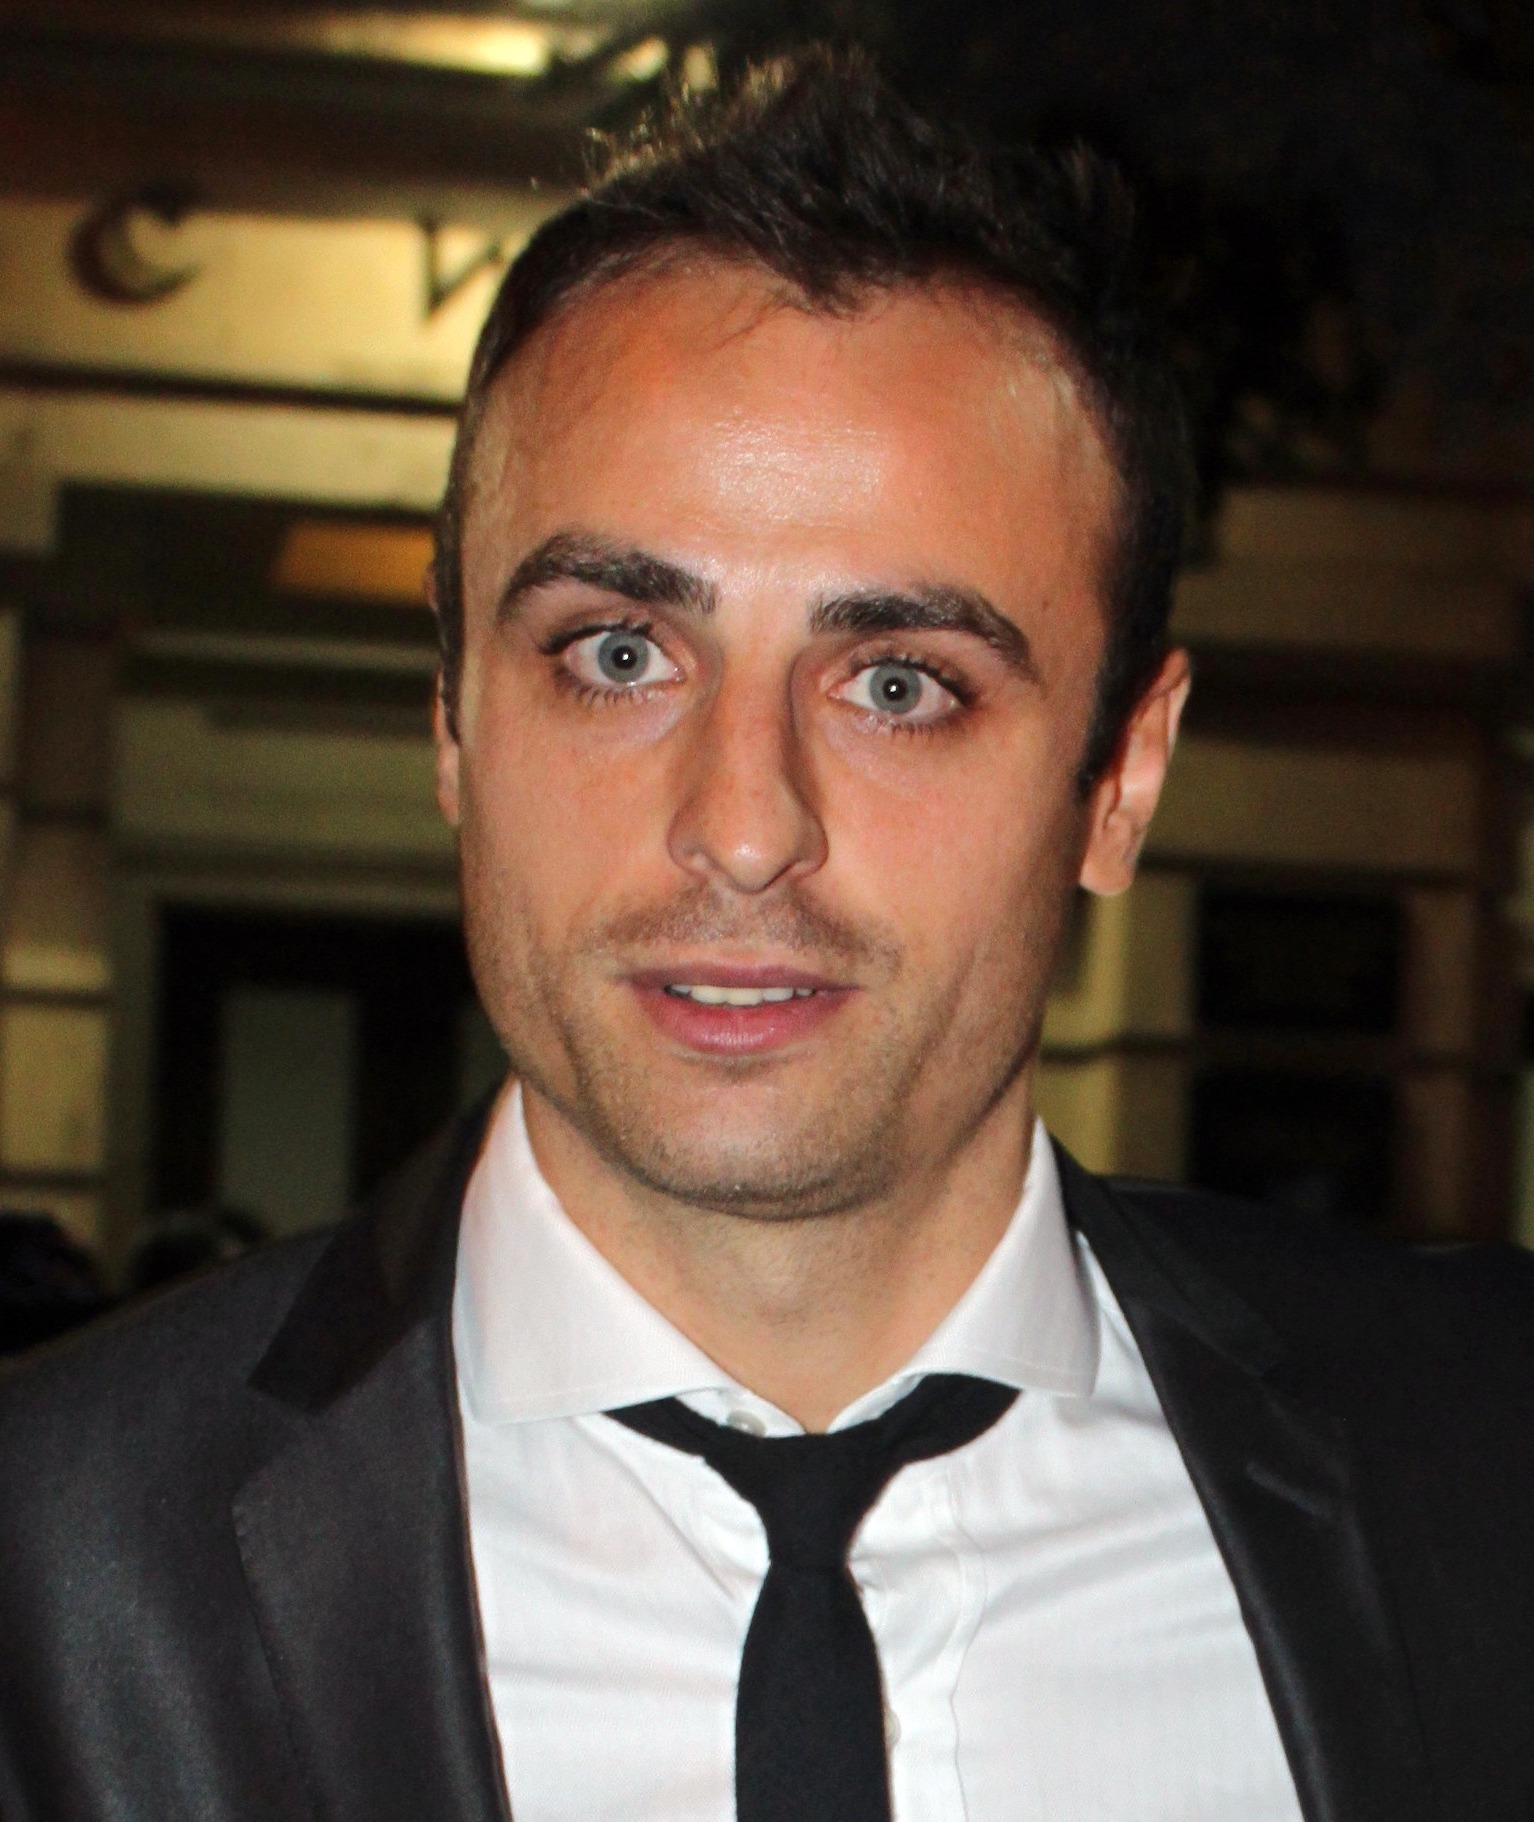 The 37-year old son of father (?) and mother(?) Dimitar Berbatov in 2018 photo. Dimitar Berbatov earned a  million dollar salary - leaving the net worth at 19 million in 2018